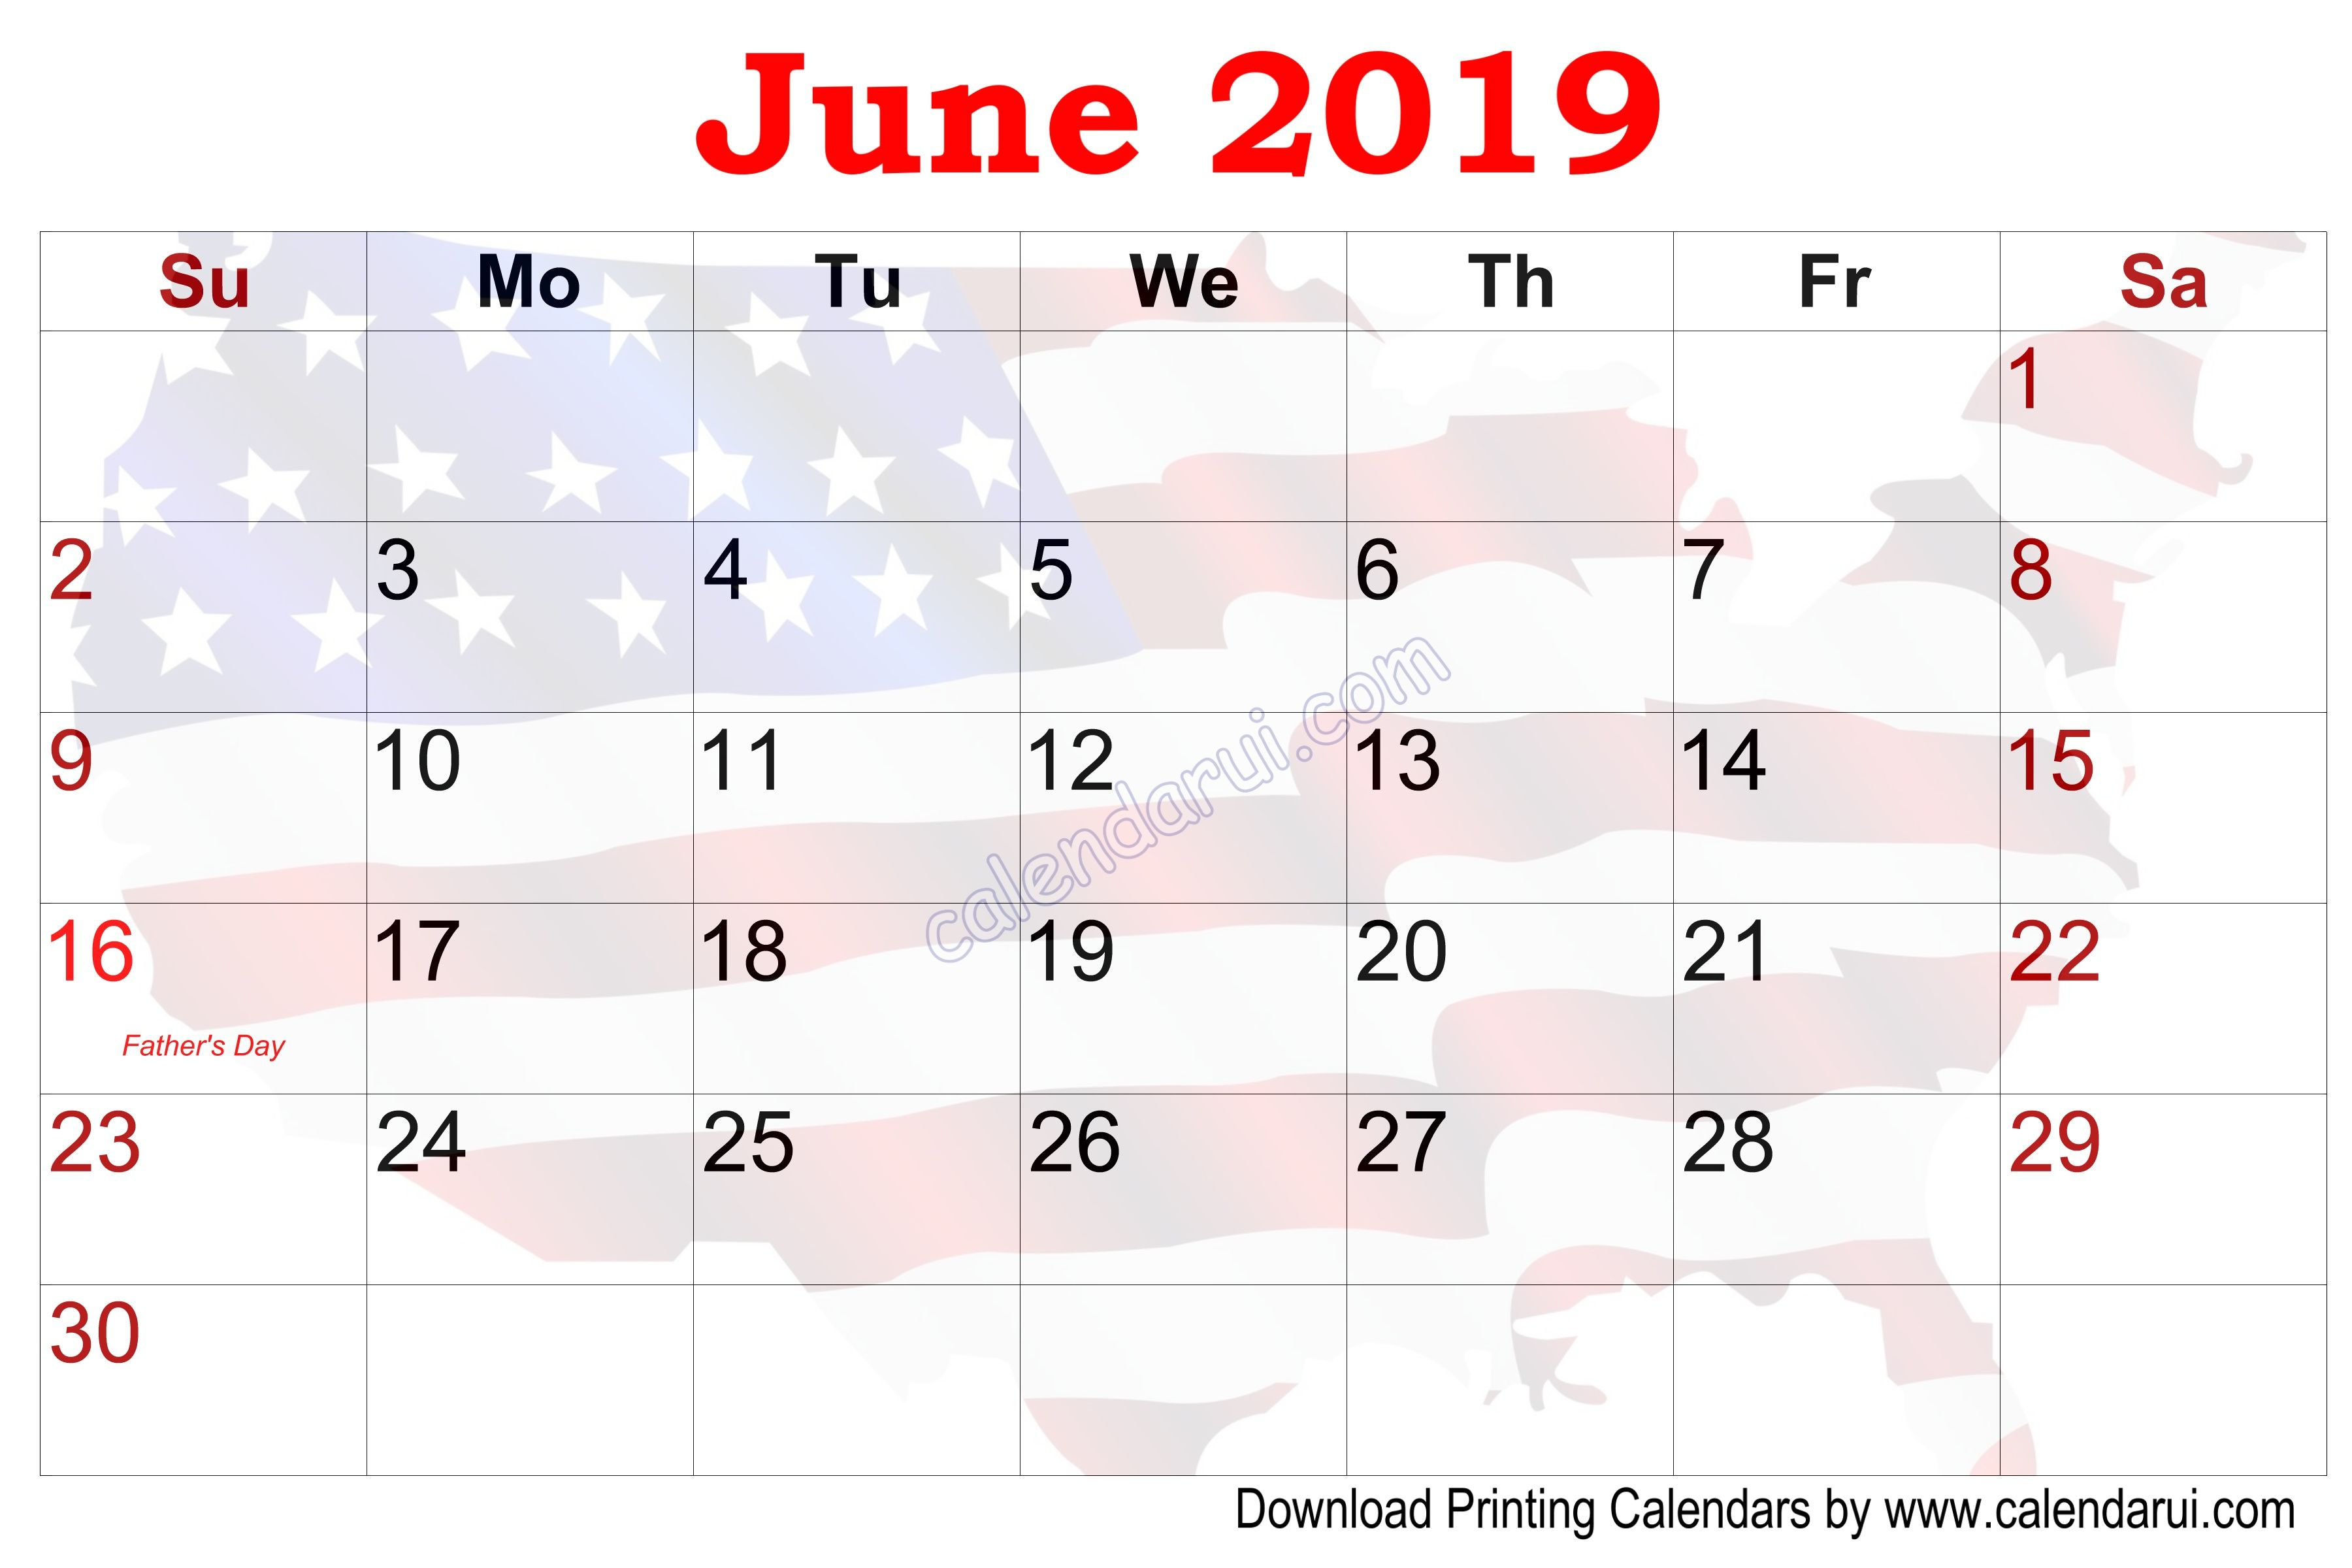 6 June U S Calendar Printable With Holidays In